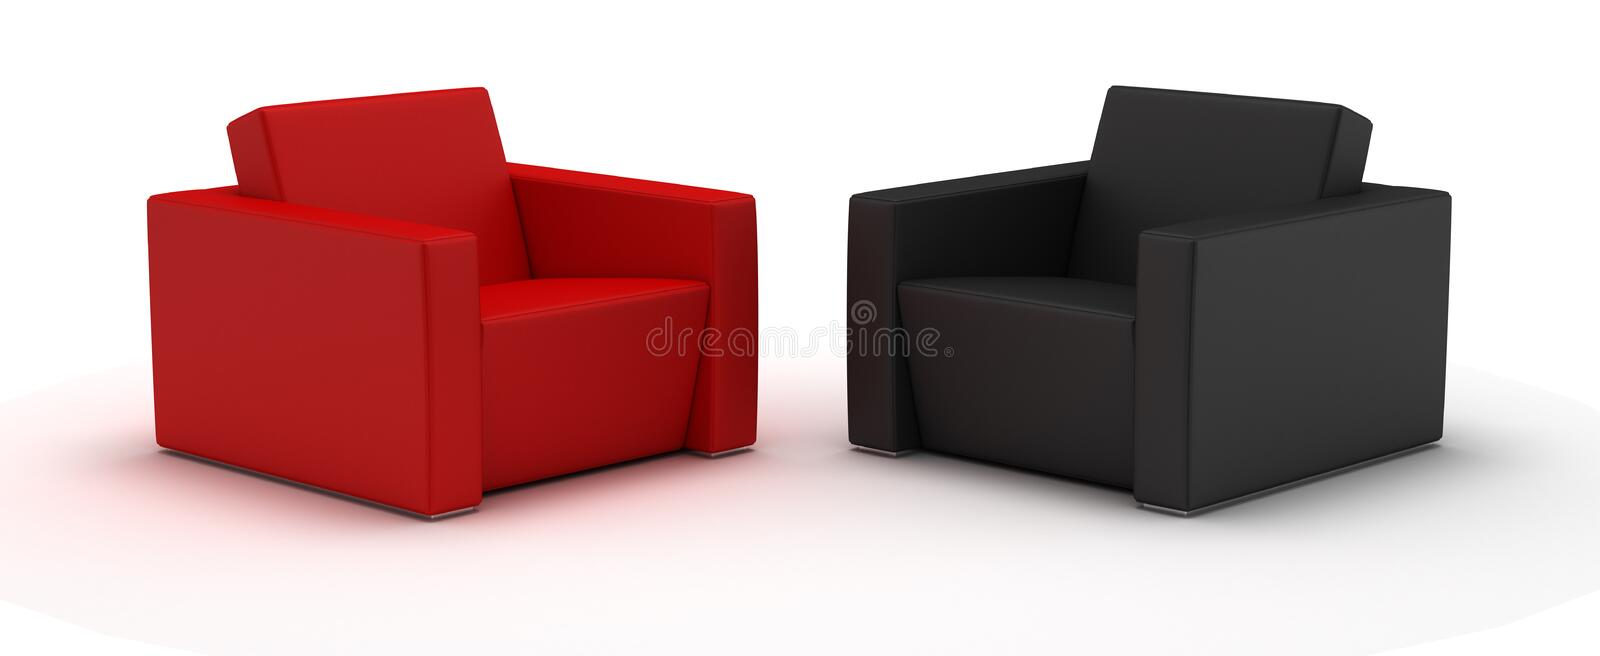 Ready For Discussion stock photos